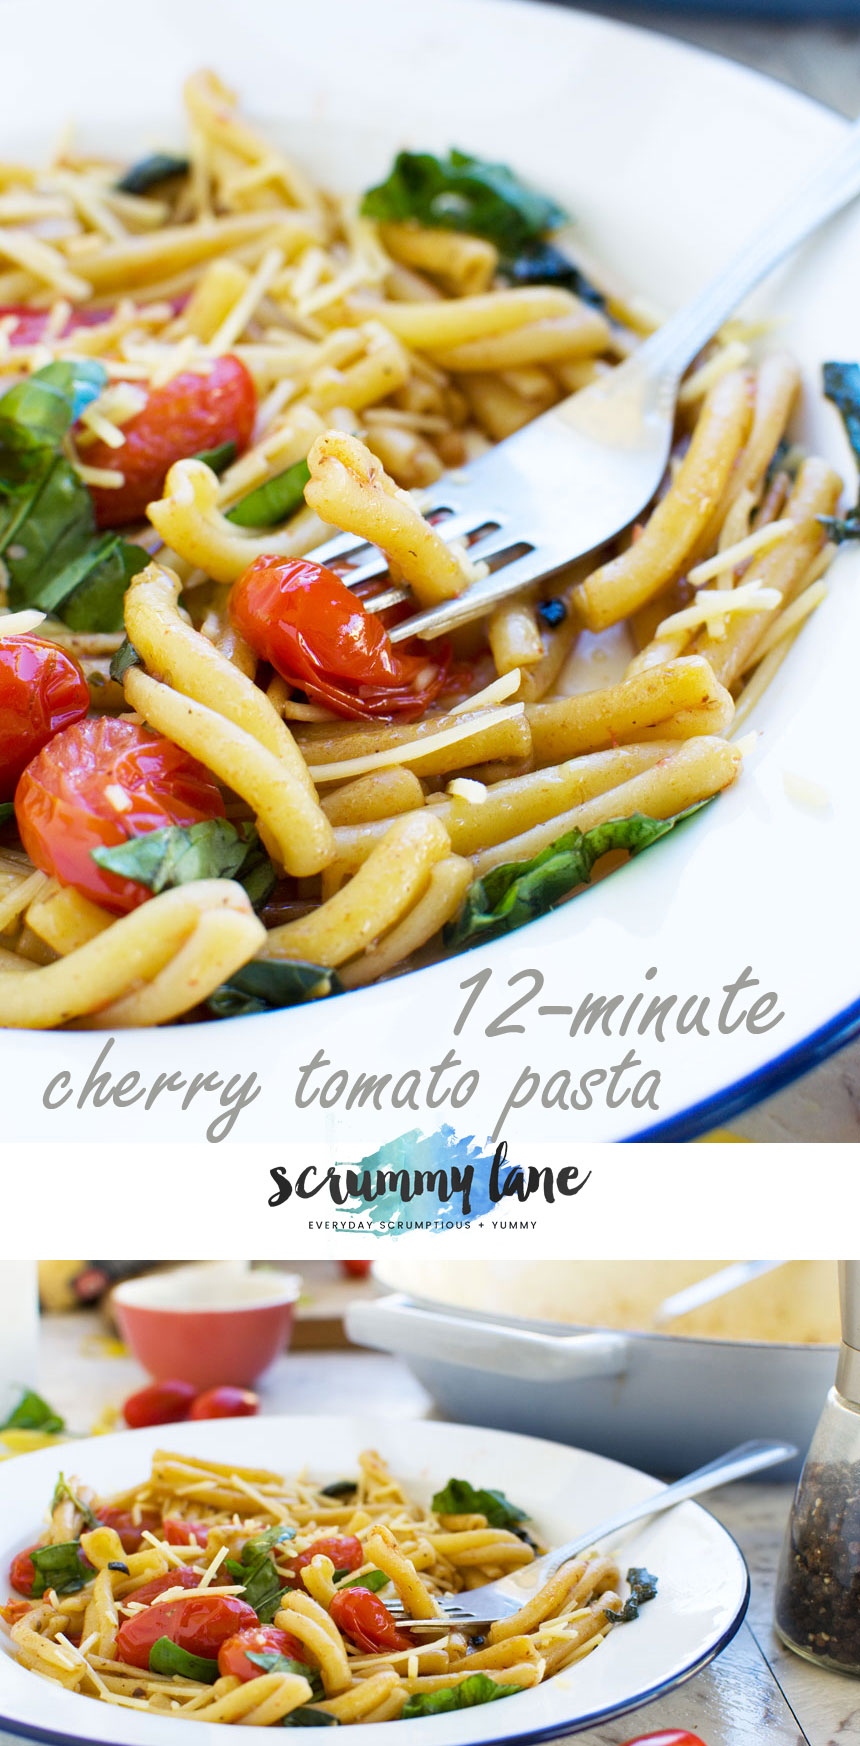 Need a dinner idea in a hurry? Make this 12-minute cherry tomato pasta!